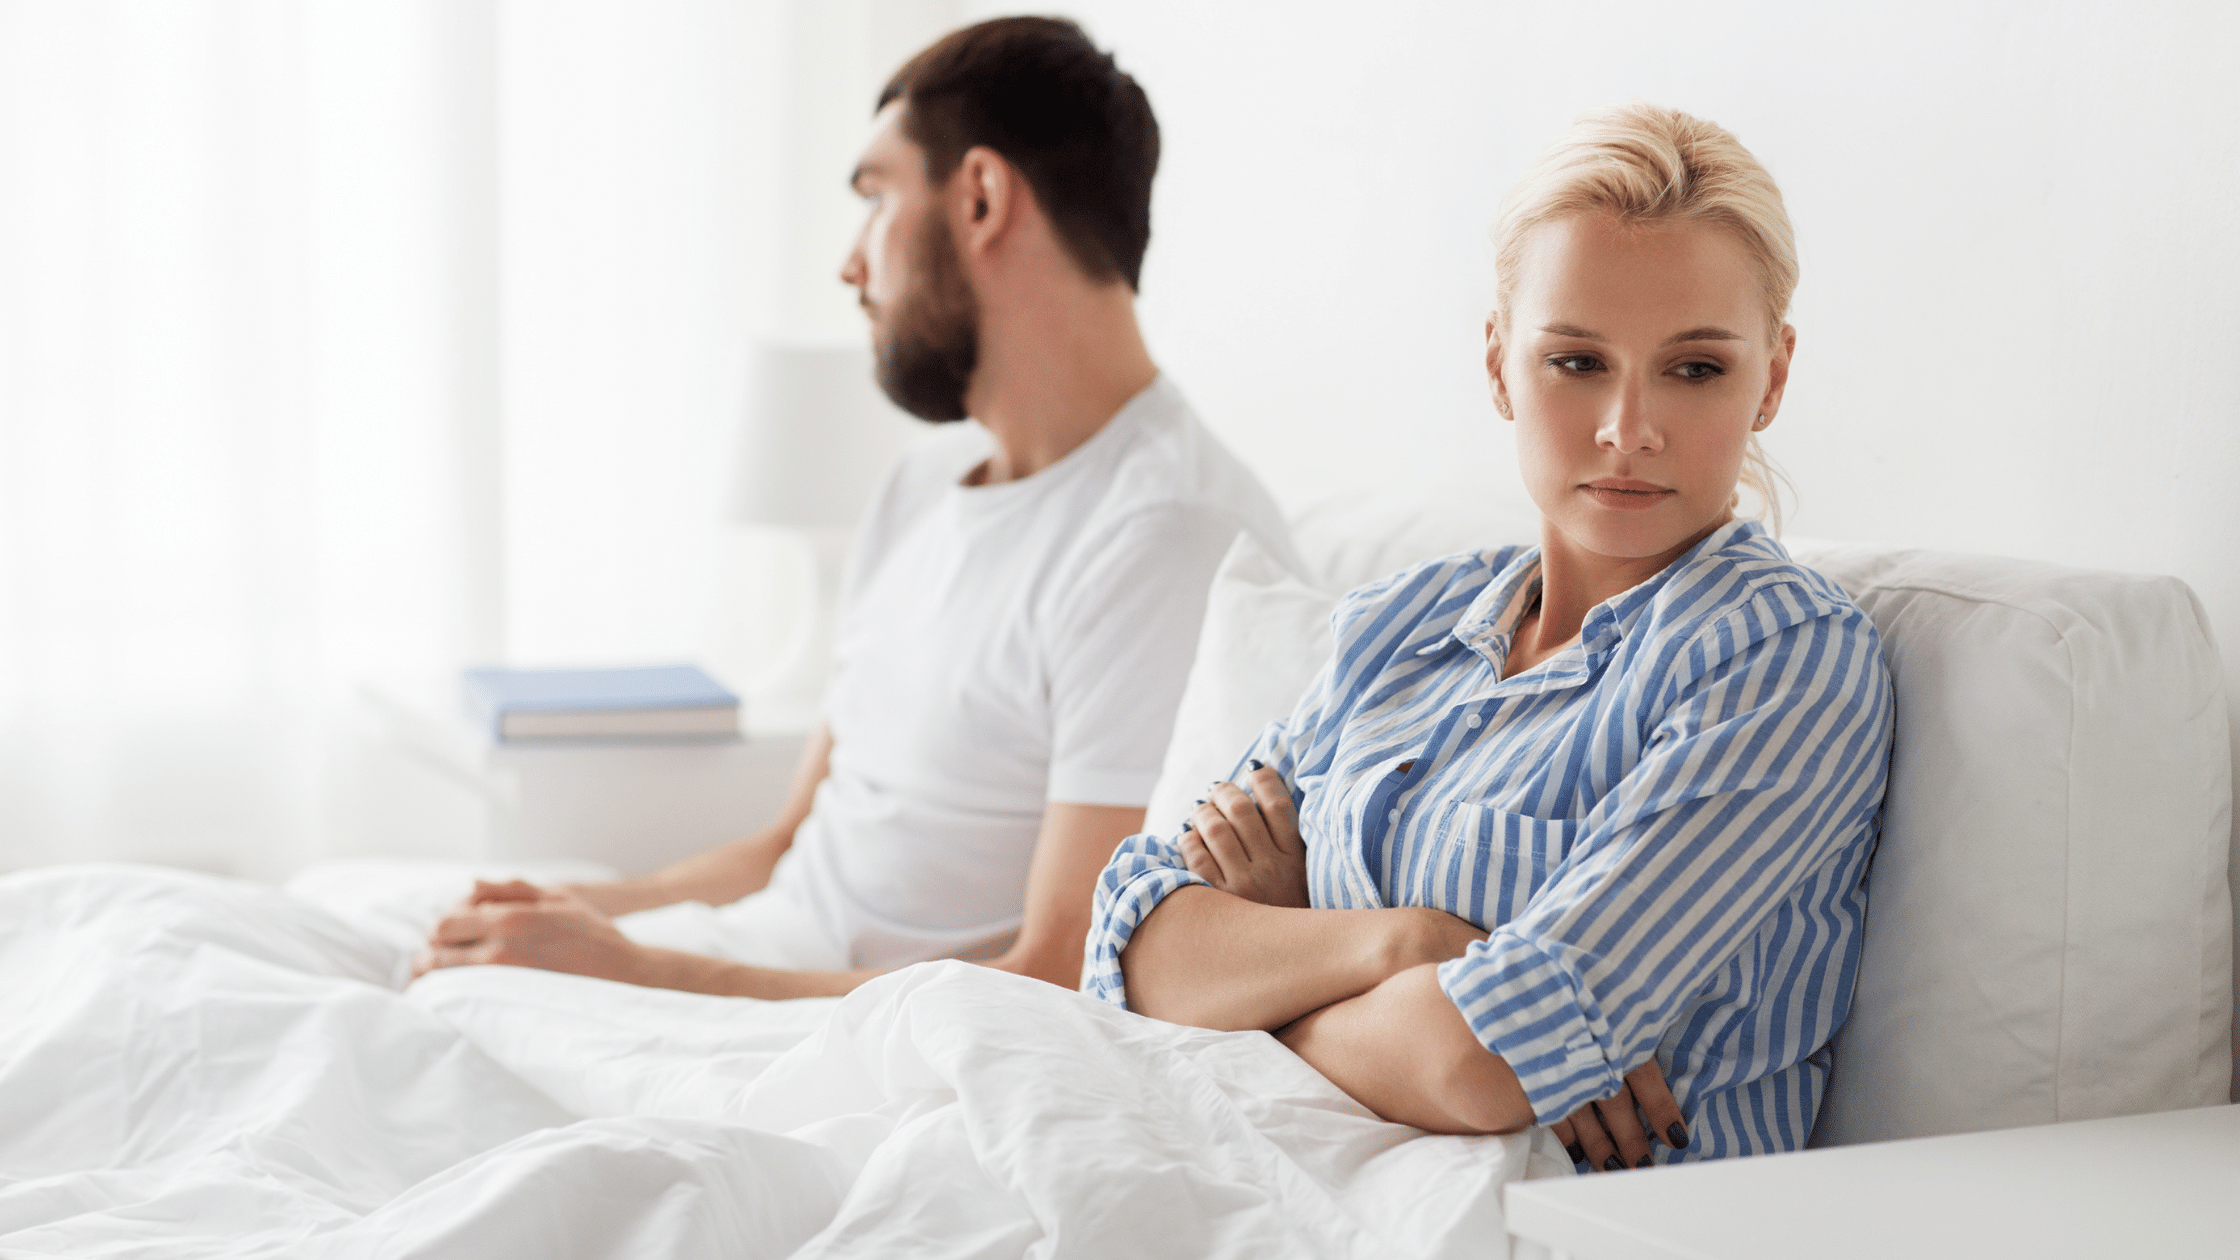 Why do Unhappy Couples Stay Together?